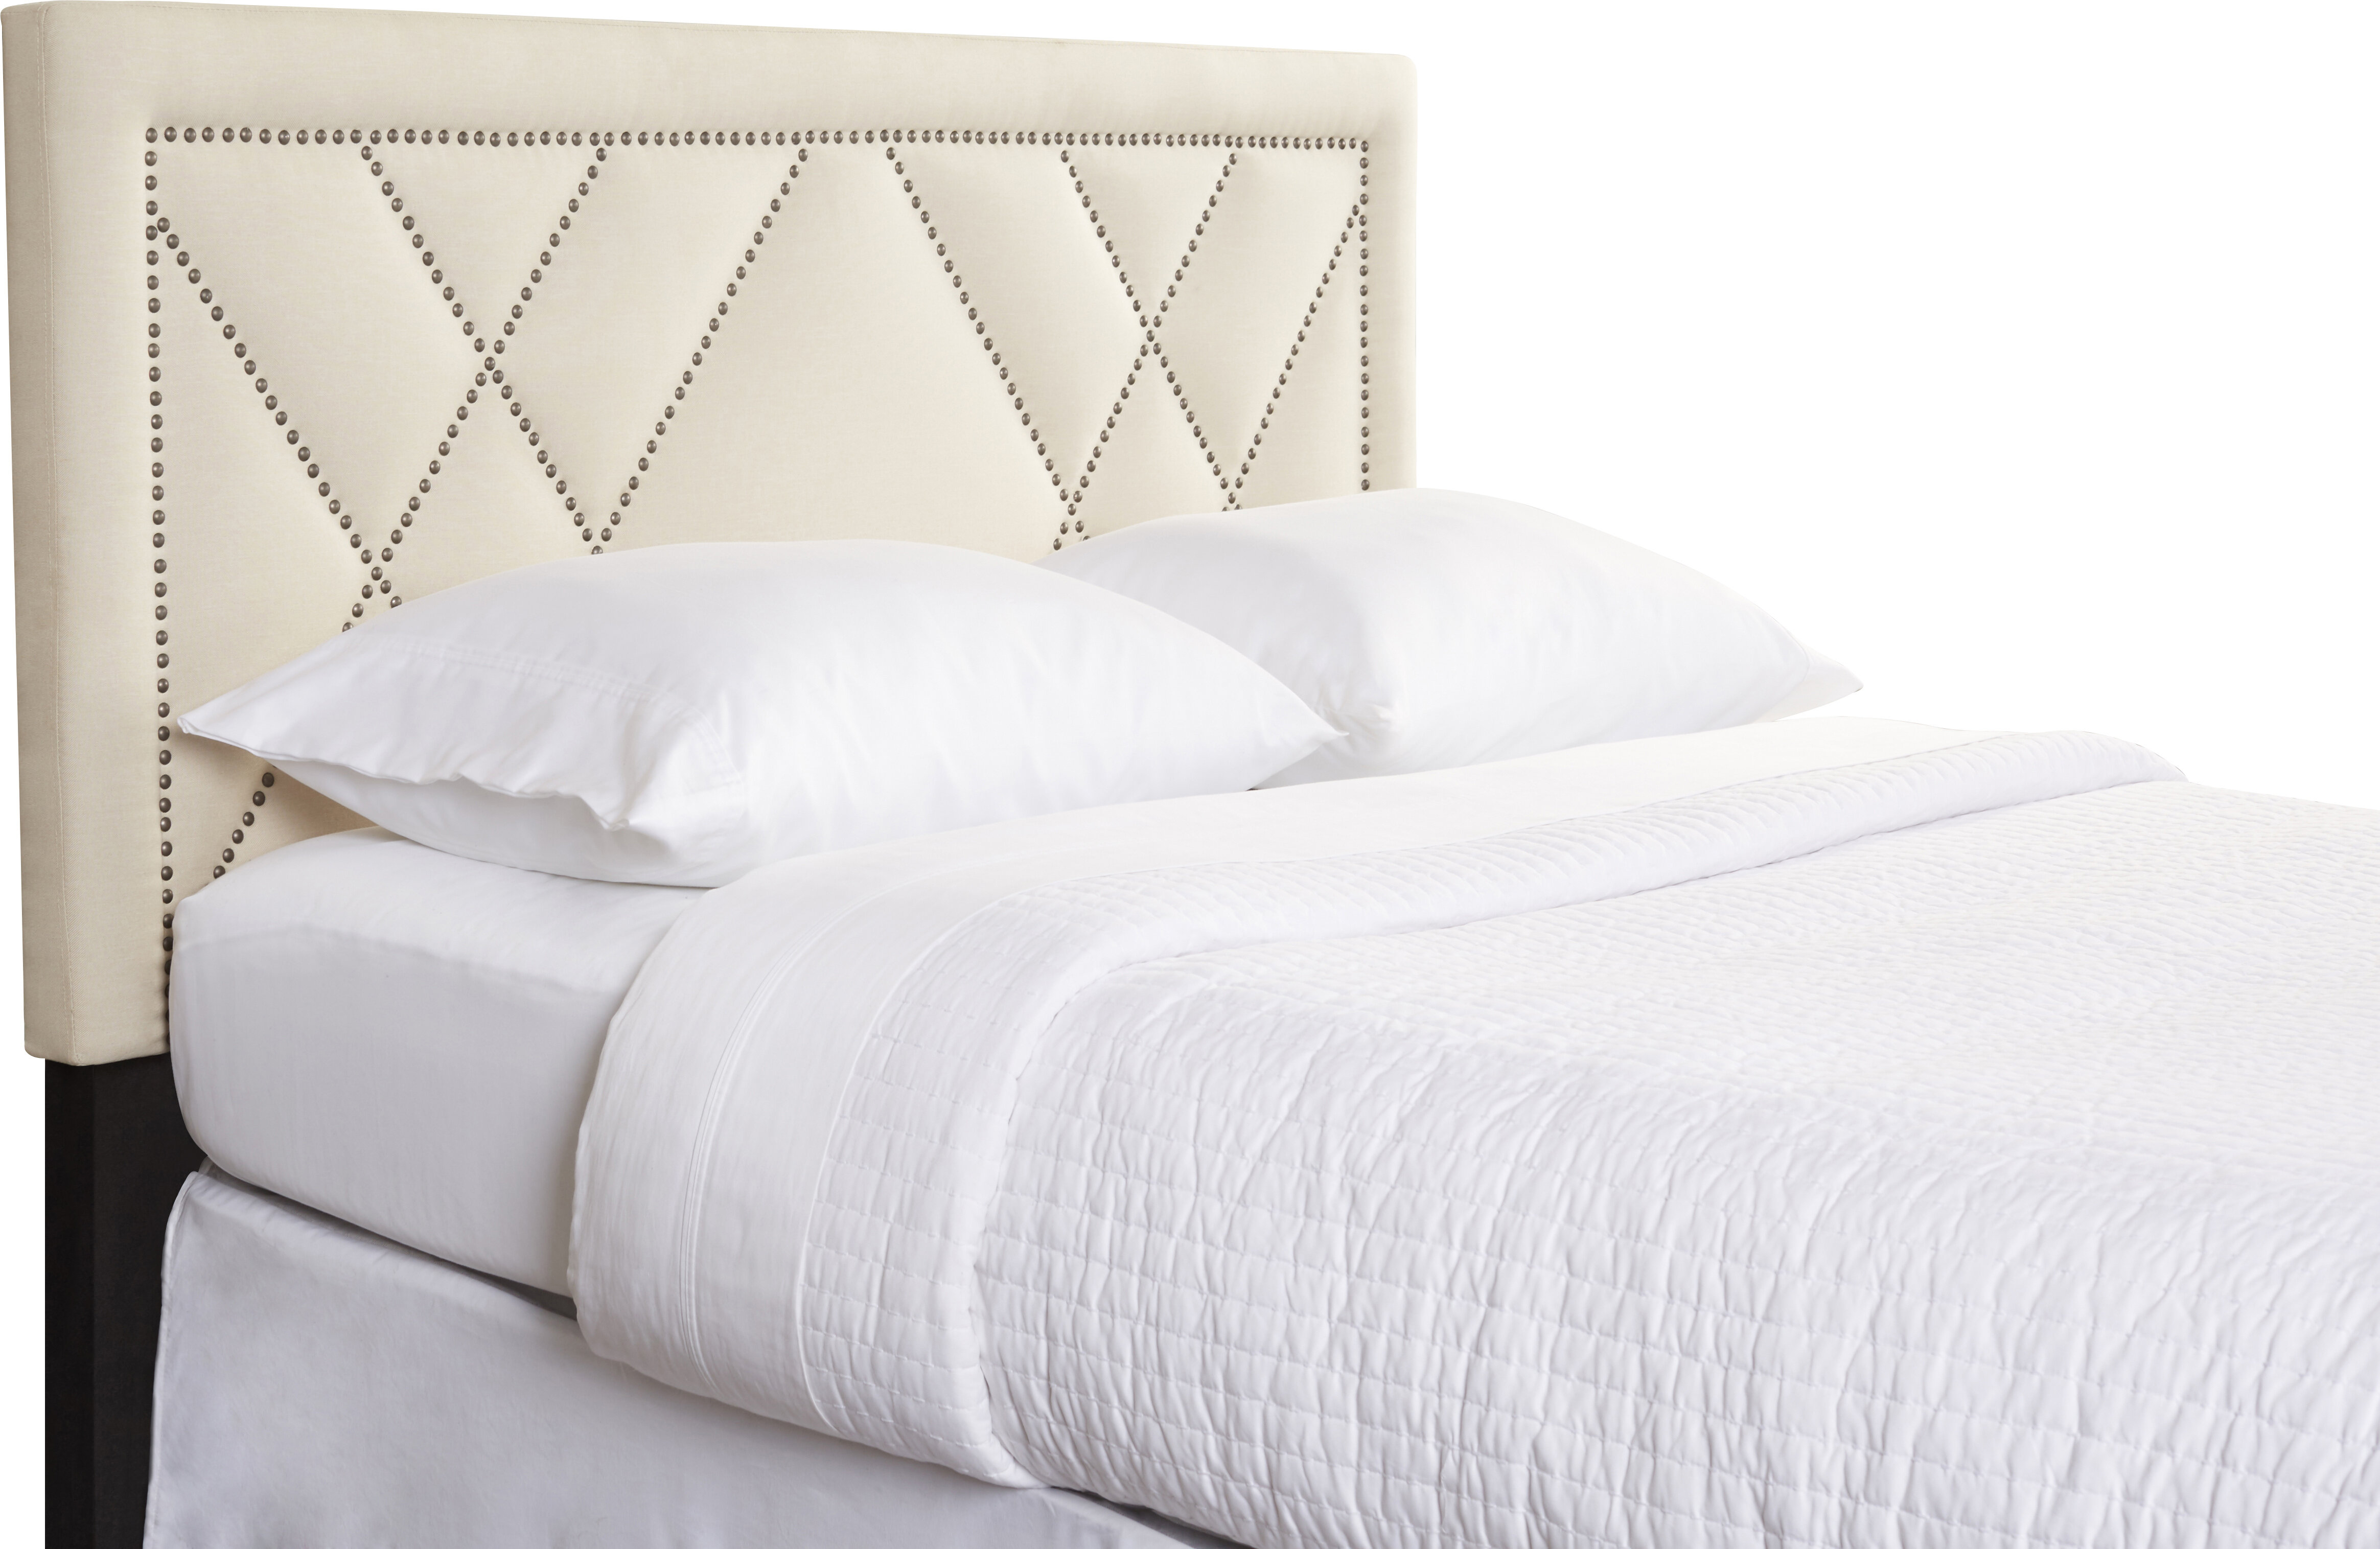 works a in style profile slim the spaces pin headboard your well with small slipcovered soften